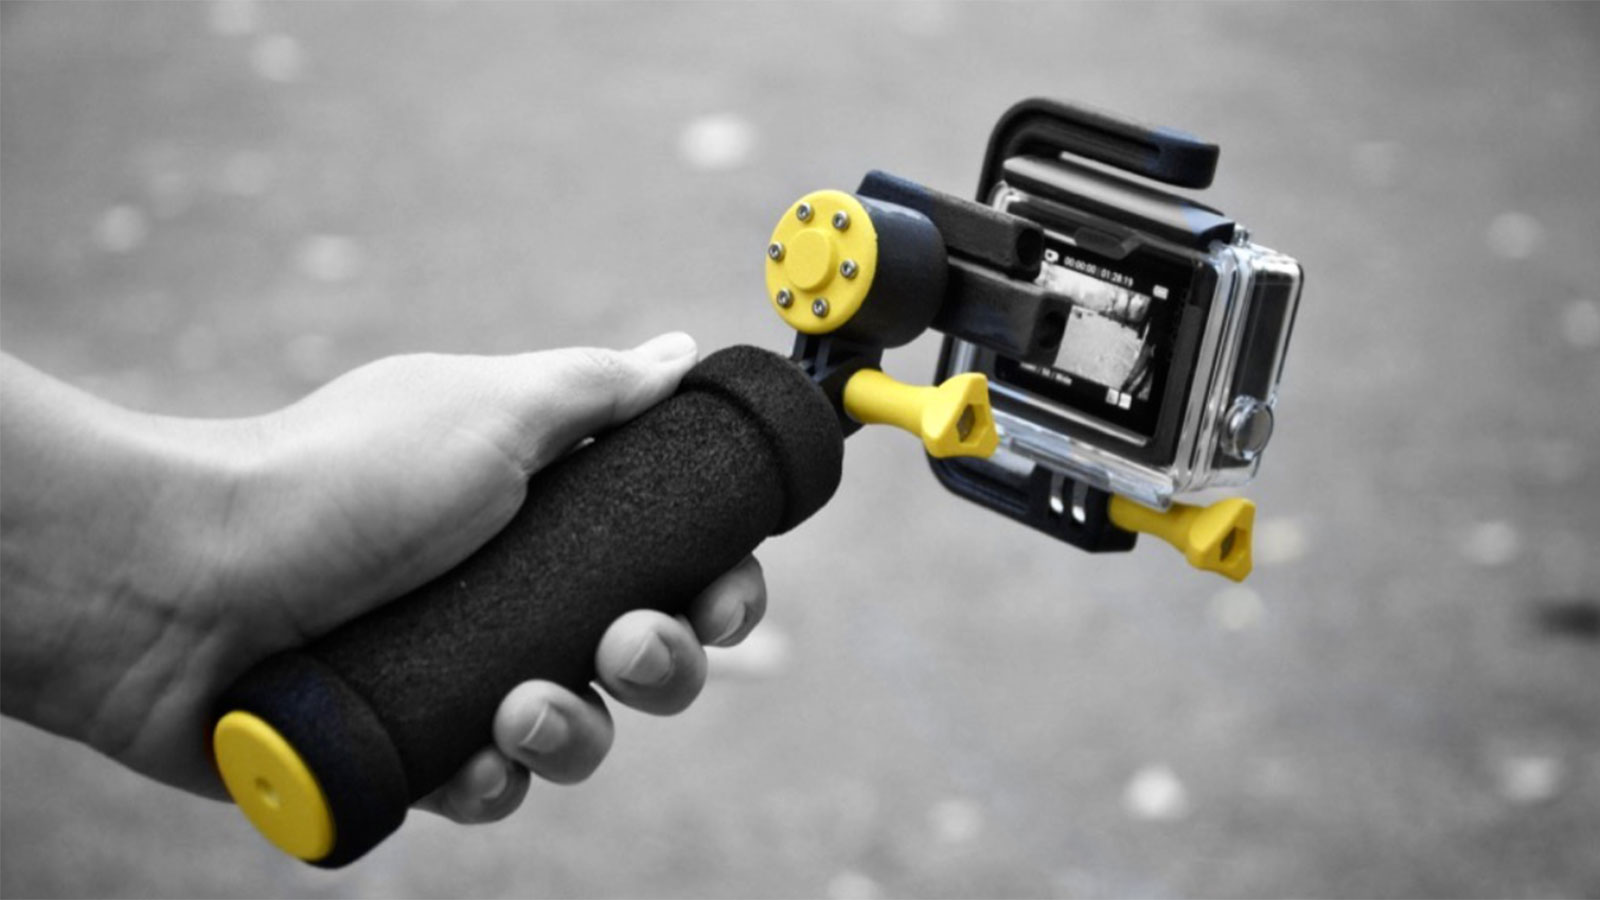 STABYLIZR STEADYCAM FOR GOPRO